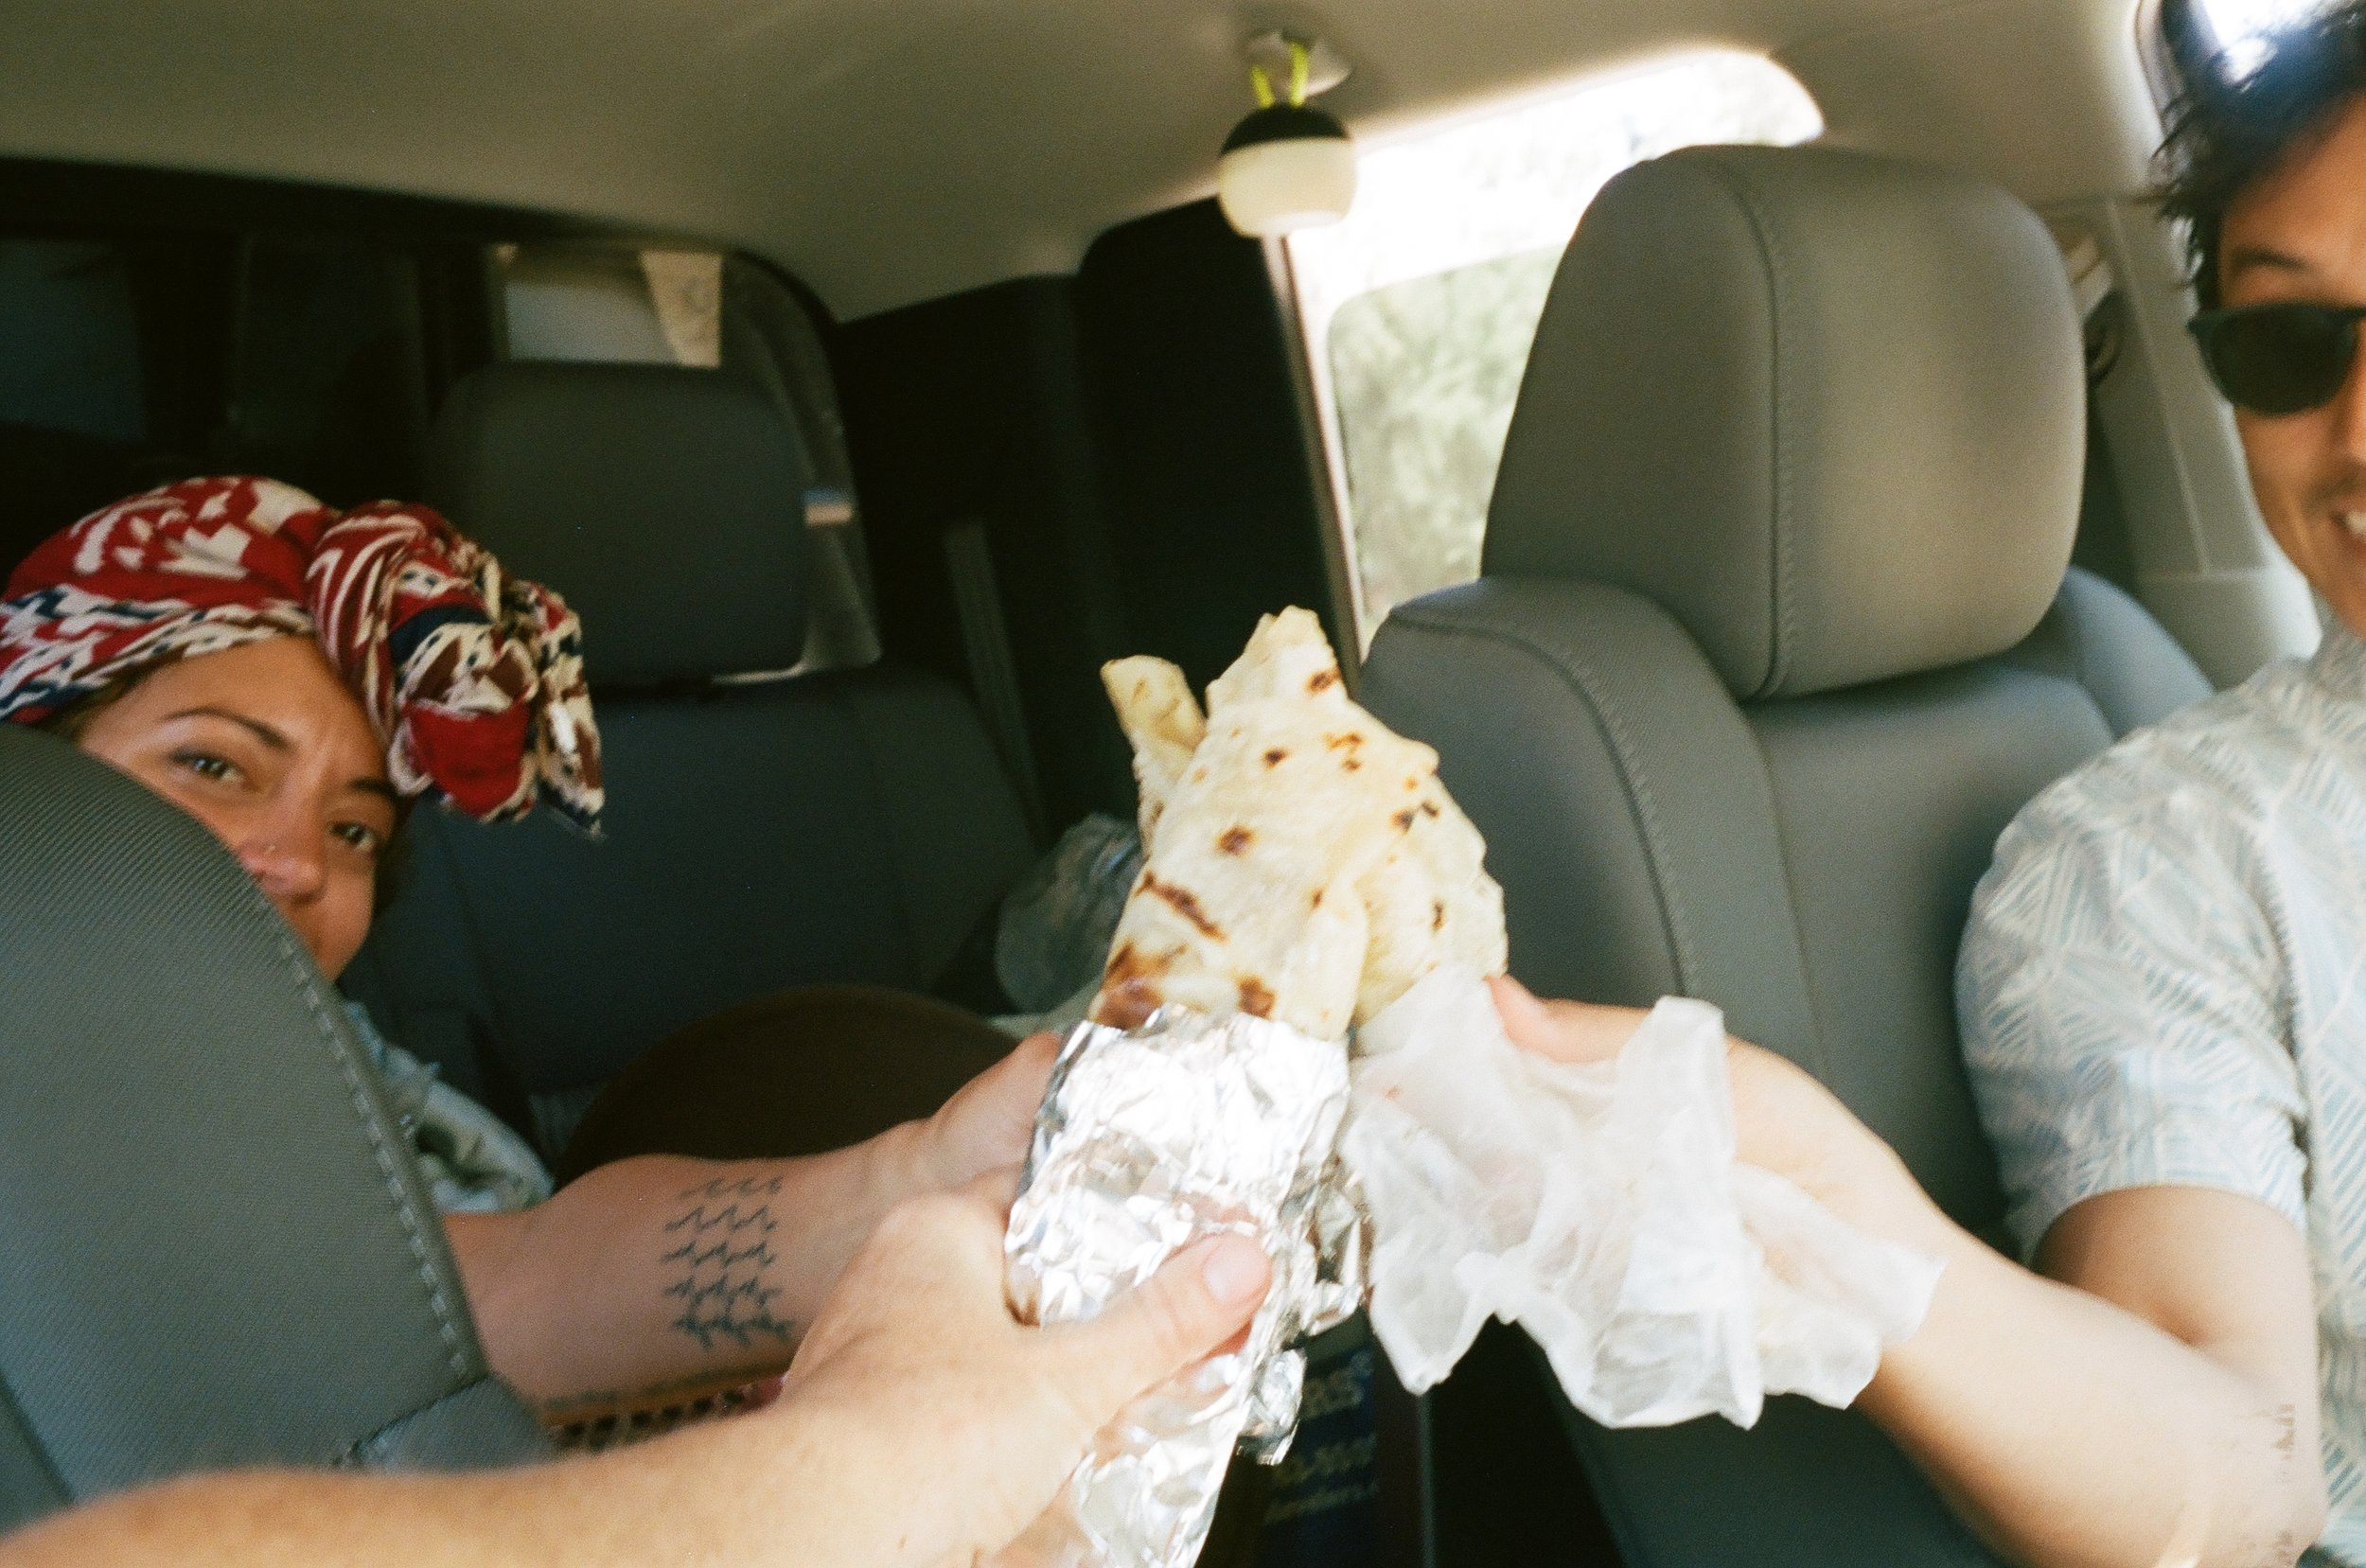 Celebratory burritos before crossing the border